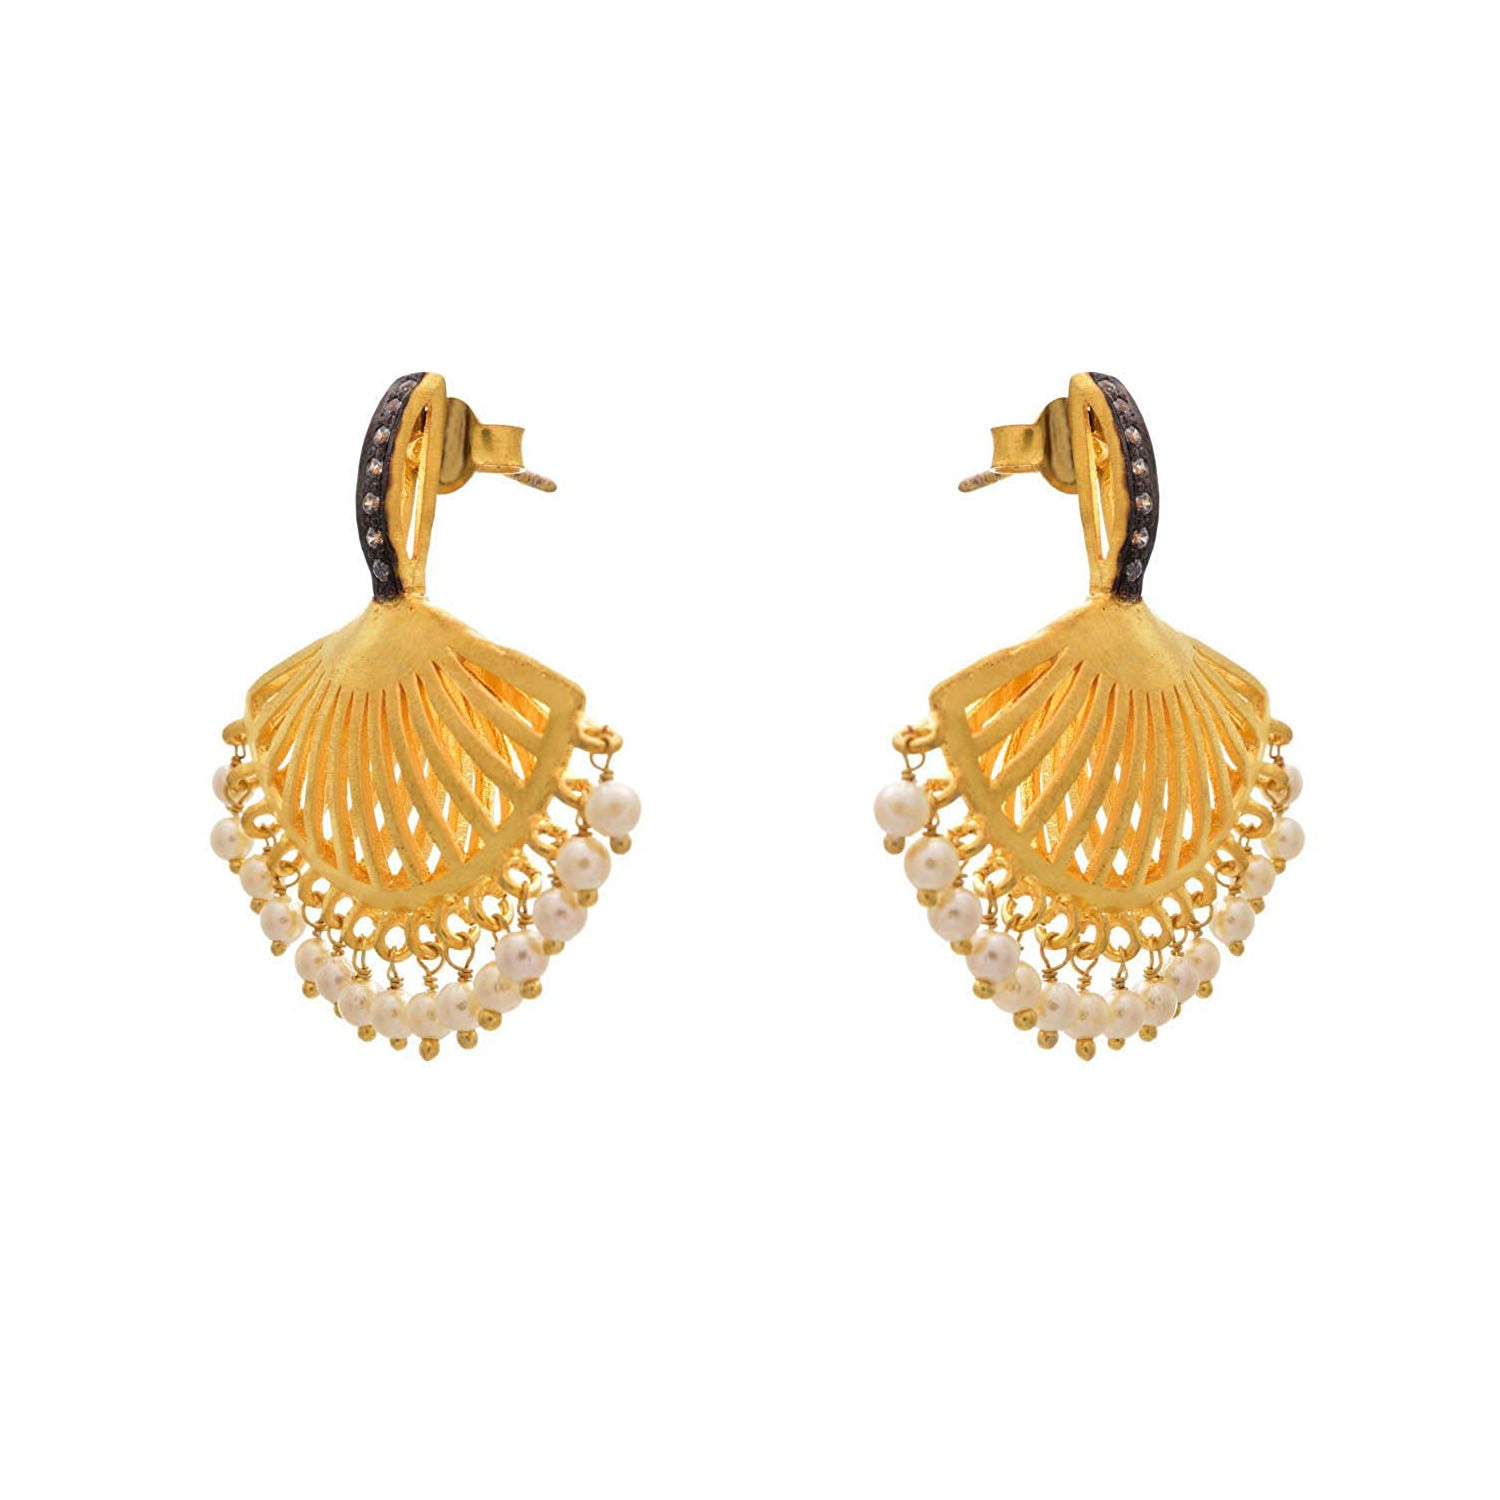 Traditional Ethnic One Gram Matt Gold Plated Earrings with Victorian Diamonds & Pearls for Girls & Women